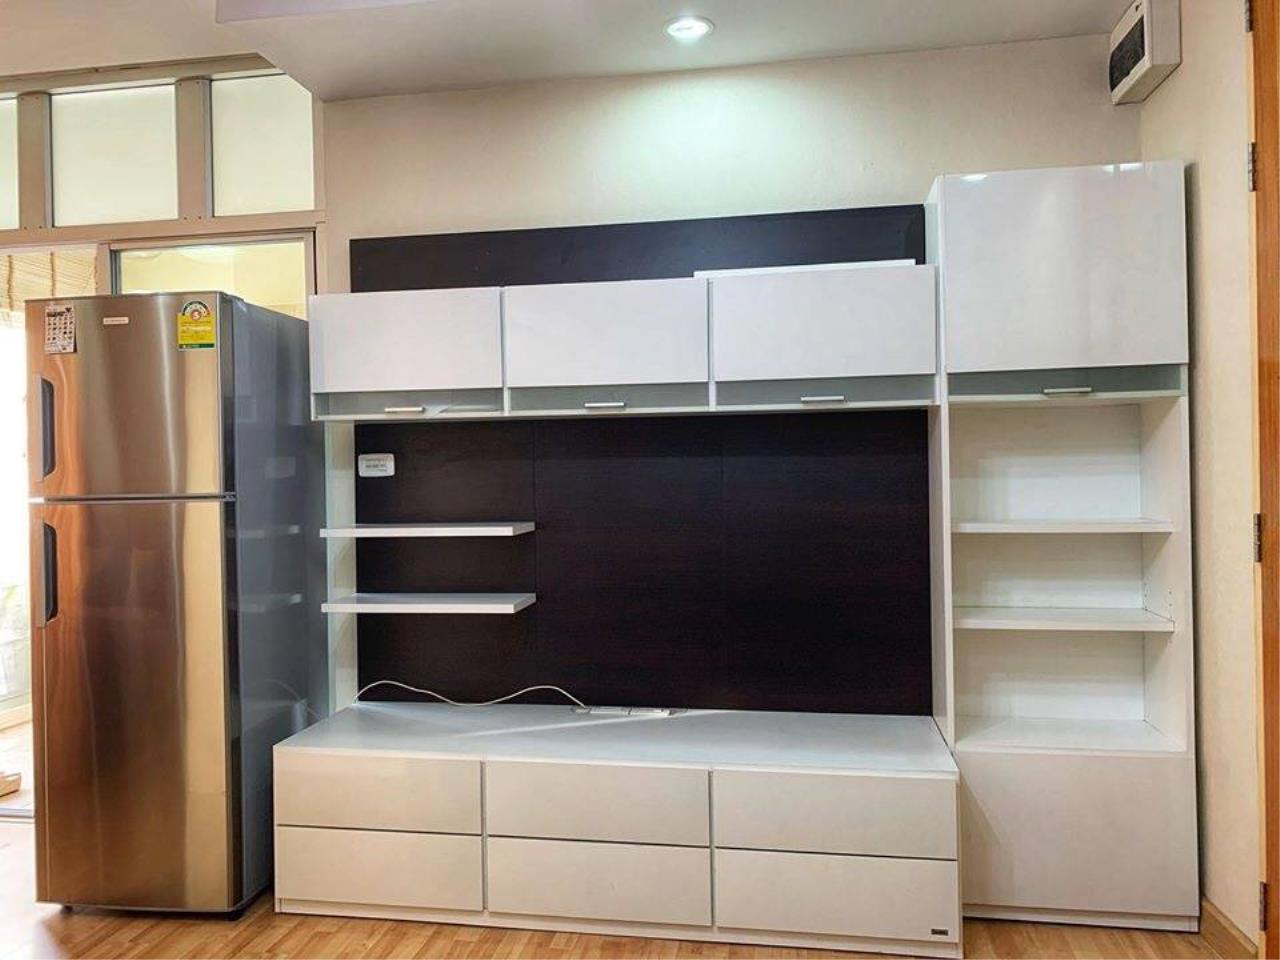 First Choice Properties by Su Agent Agency's KP037 RATCHADA CITY 18 for sale 1.87 M. 1bedroom. 34 sq.m. @MRT Huai Khwang 5